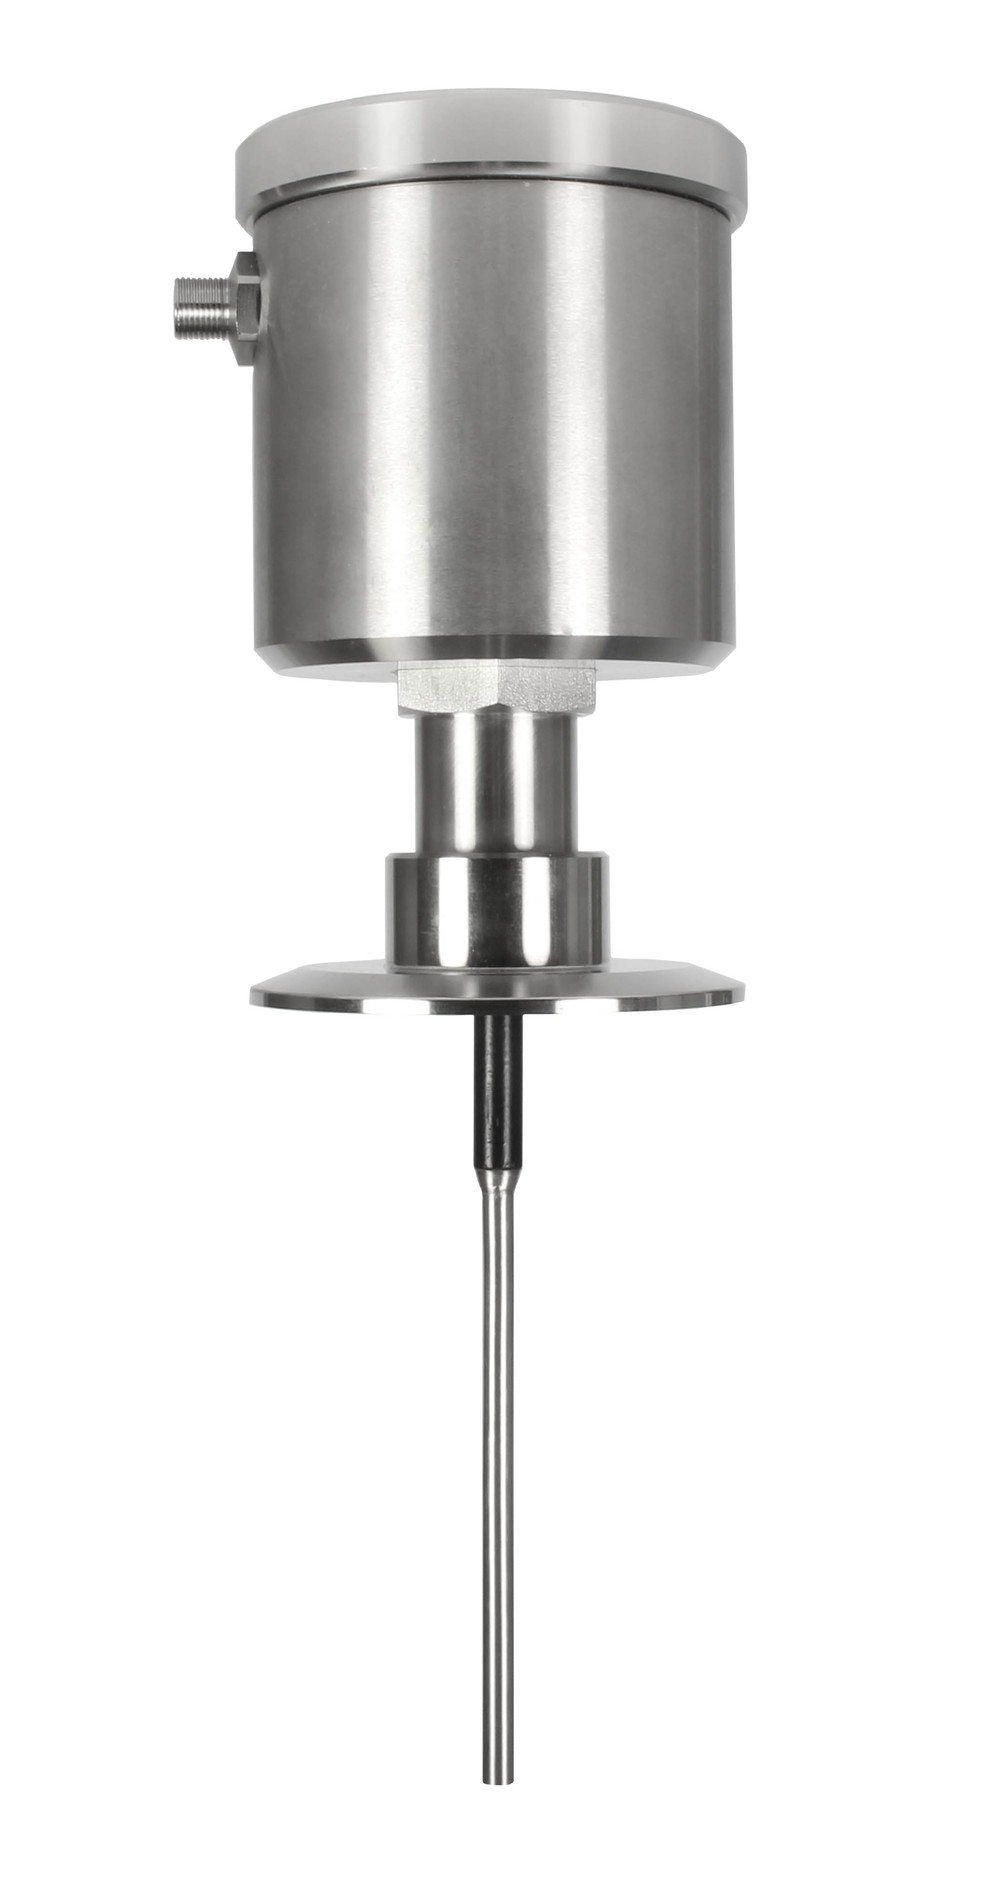 "LN ""ROD TYPE"" POTENTIOMETRIC LEVEL TRANSMITTER"